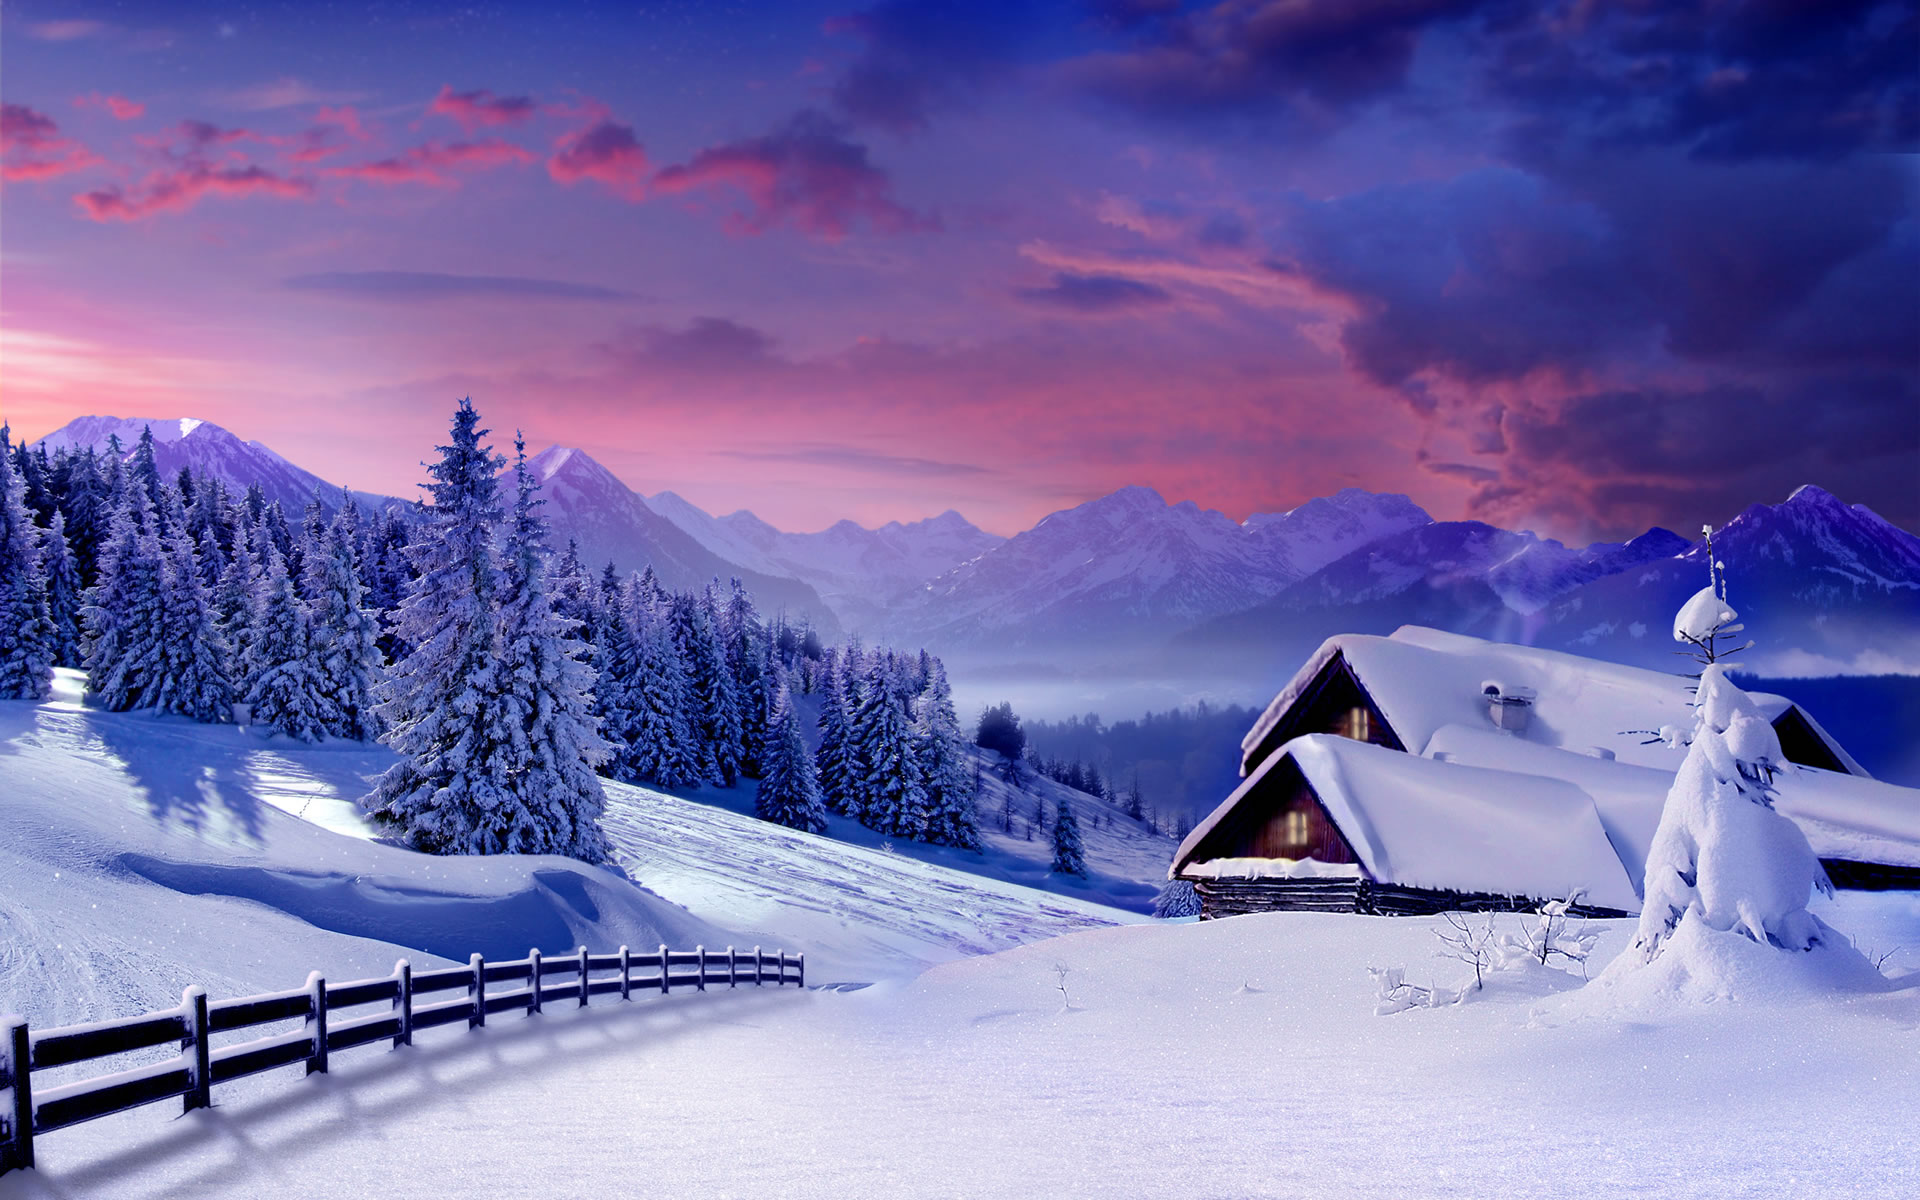 Winter Wallpaper 17 1920x1200